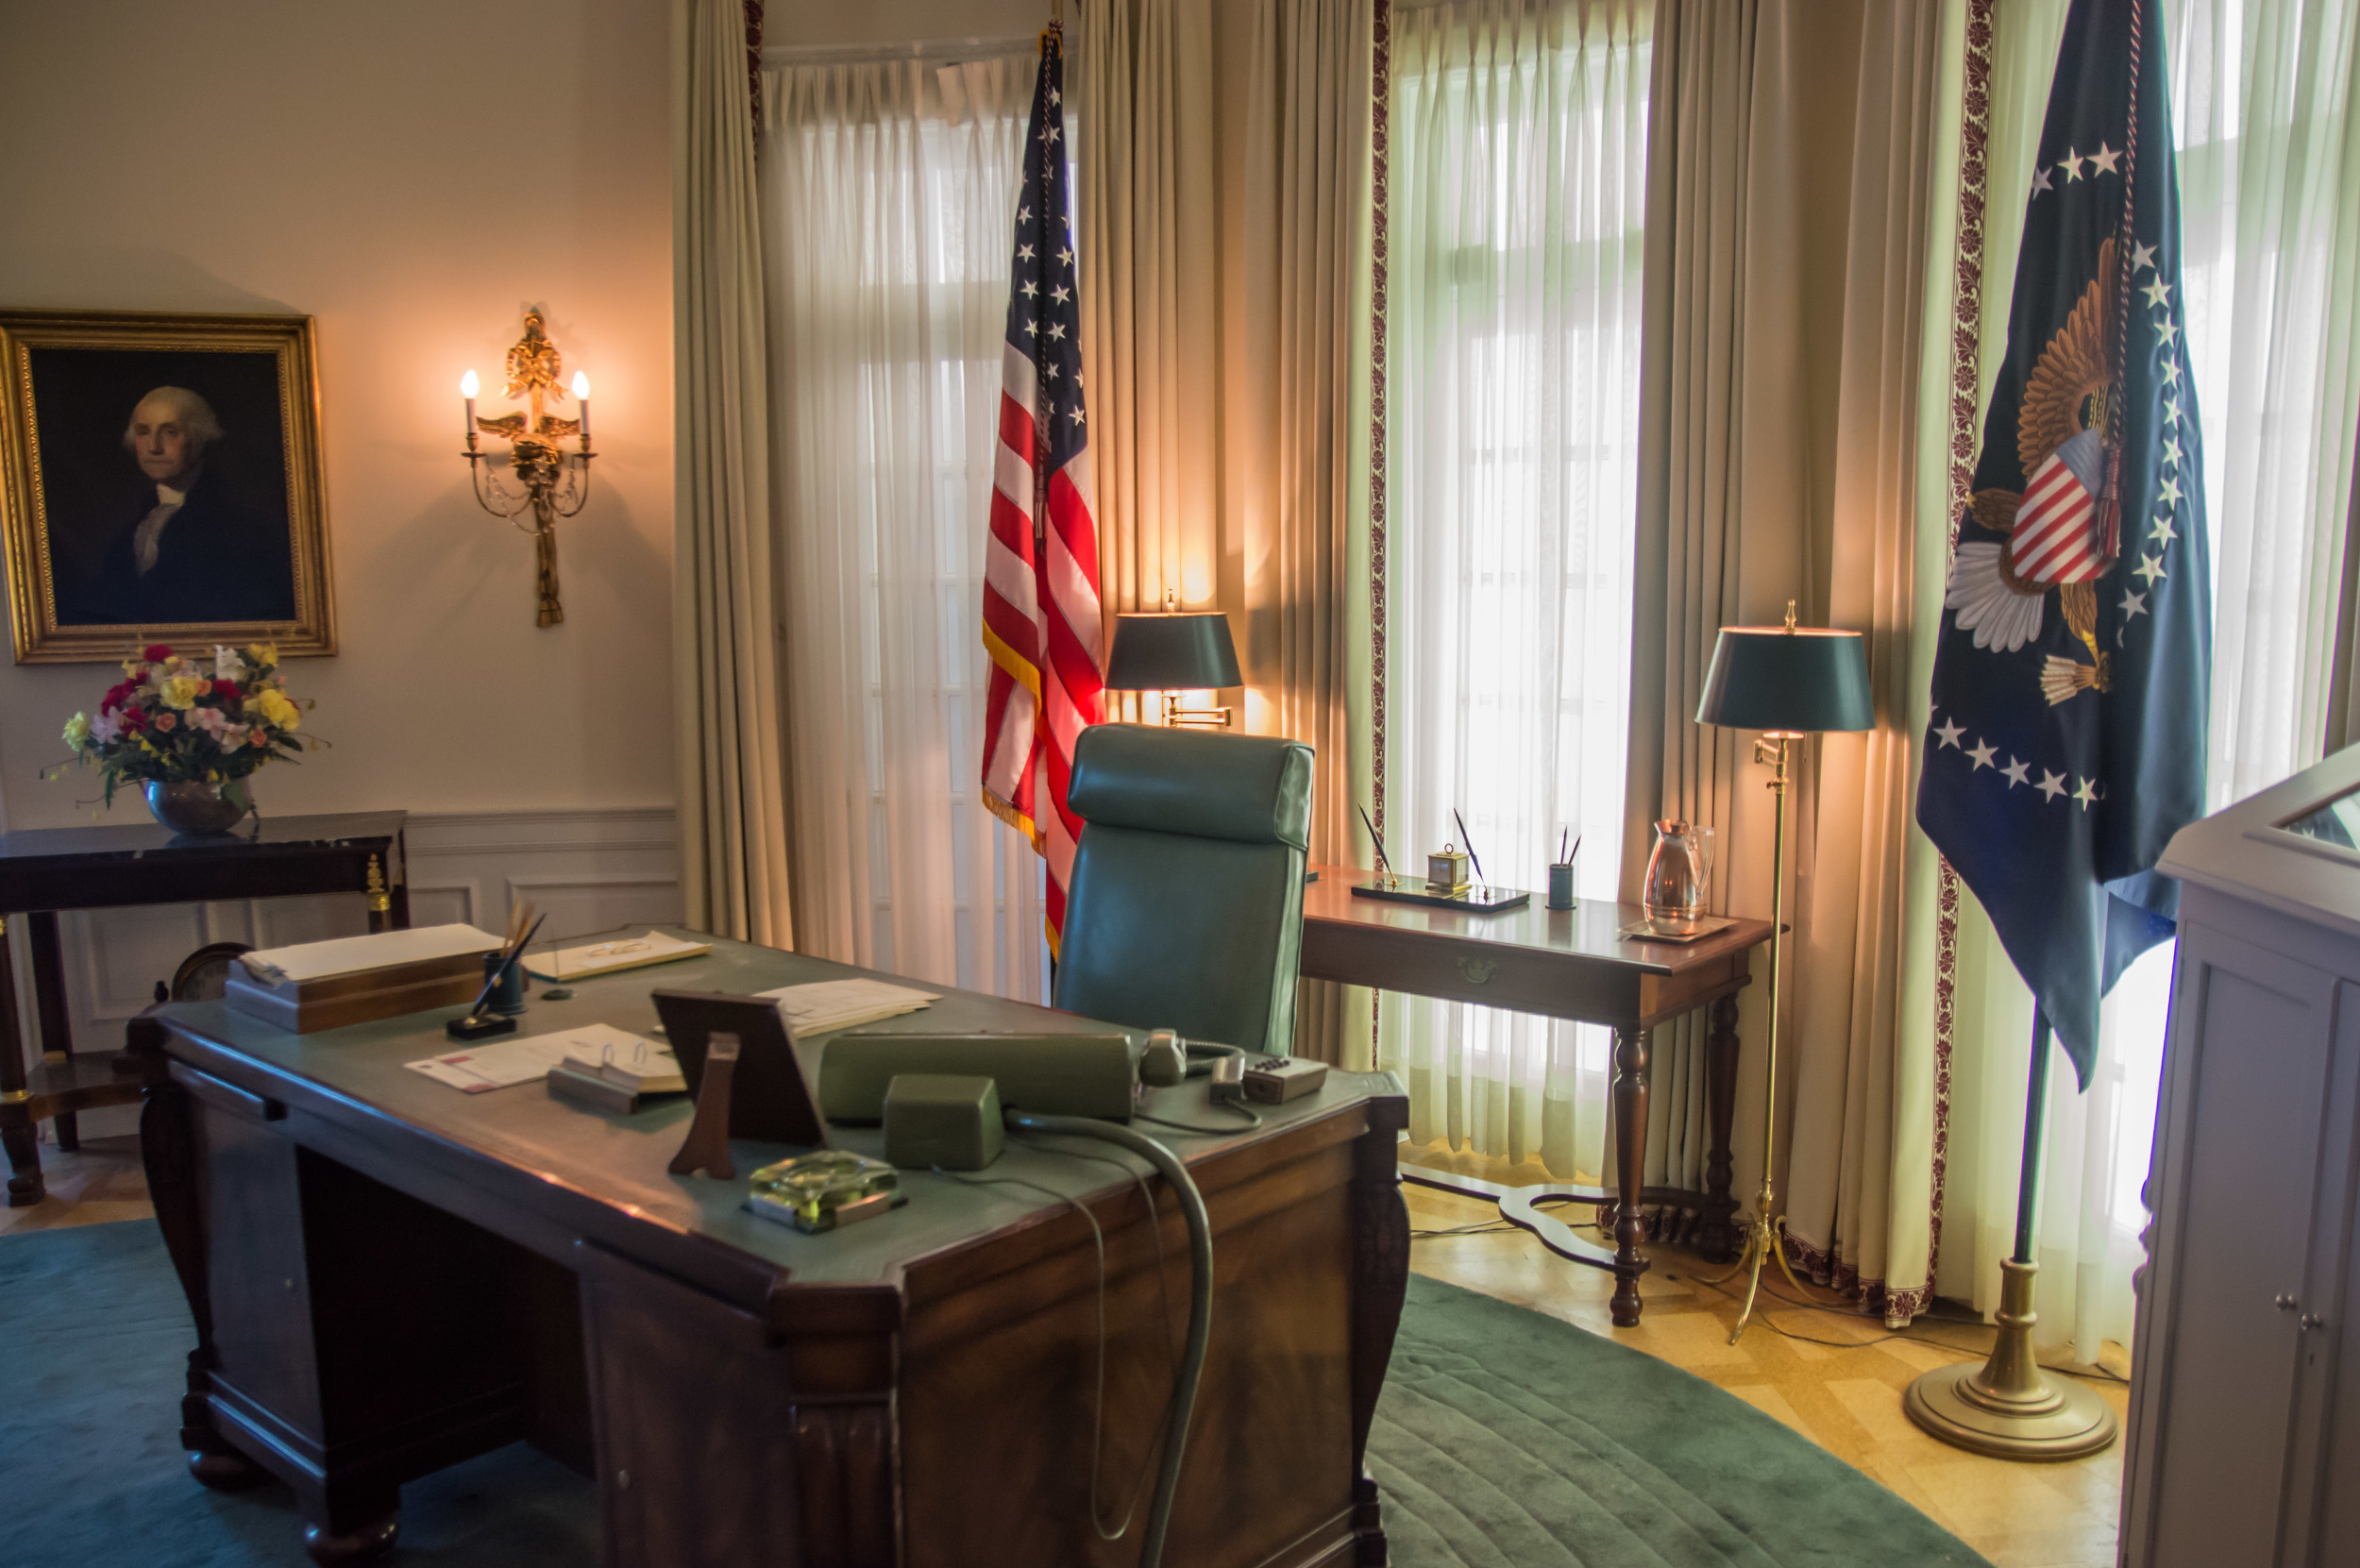 LBJ's Oval Office recreated in the Library. Very detail oriented, very cool.